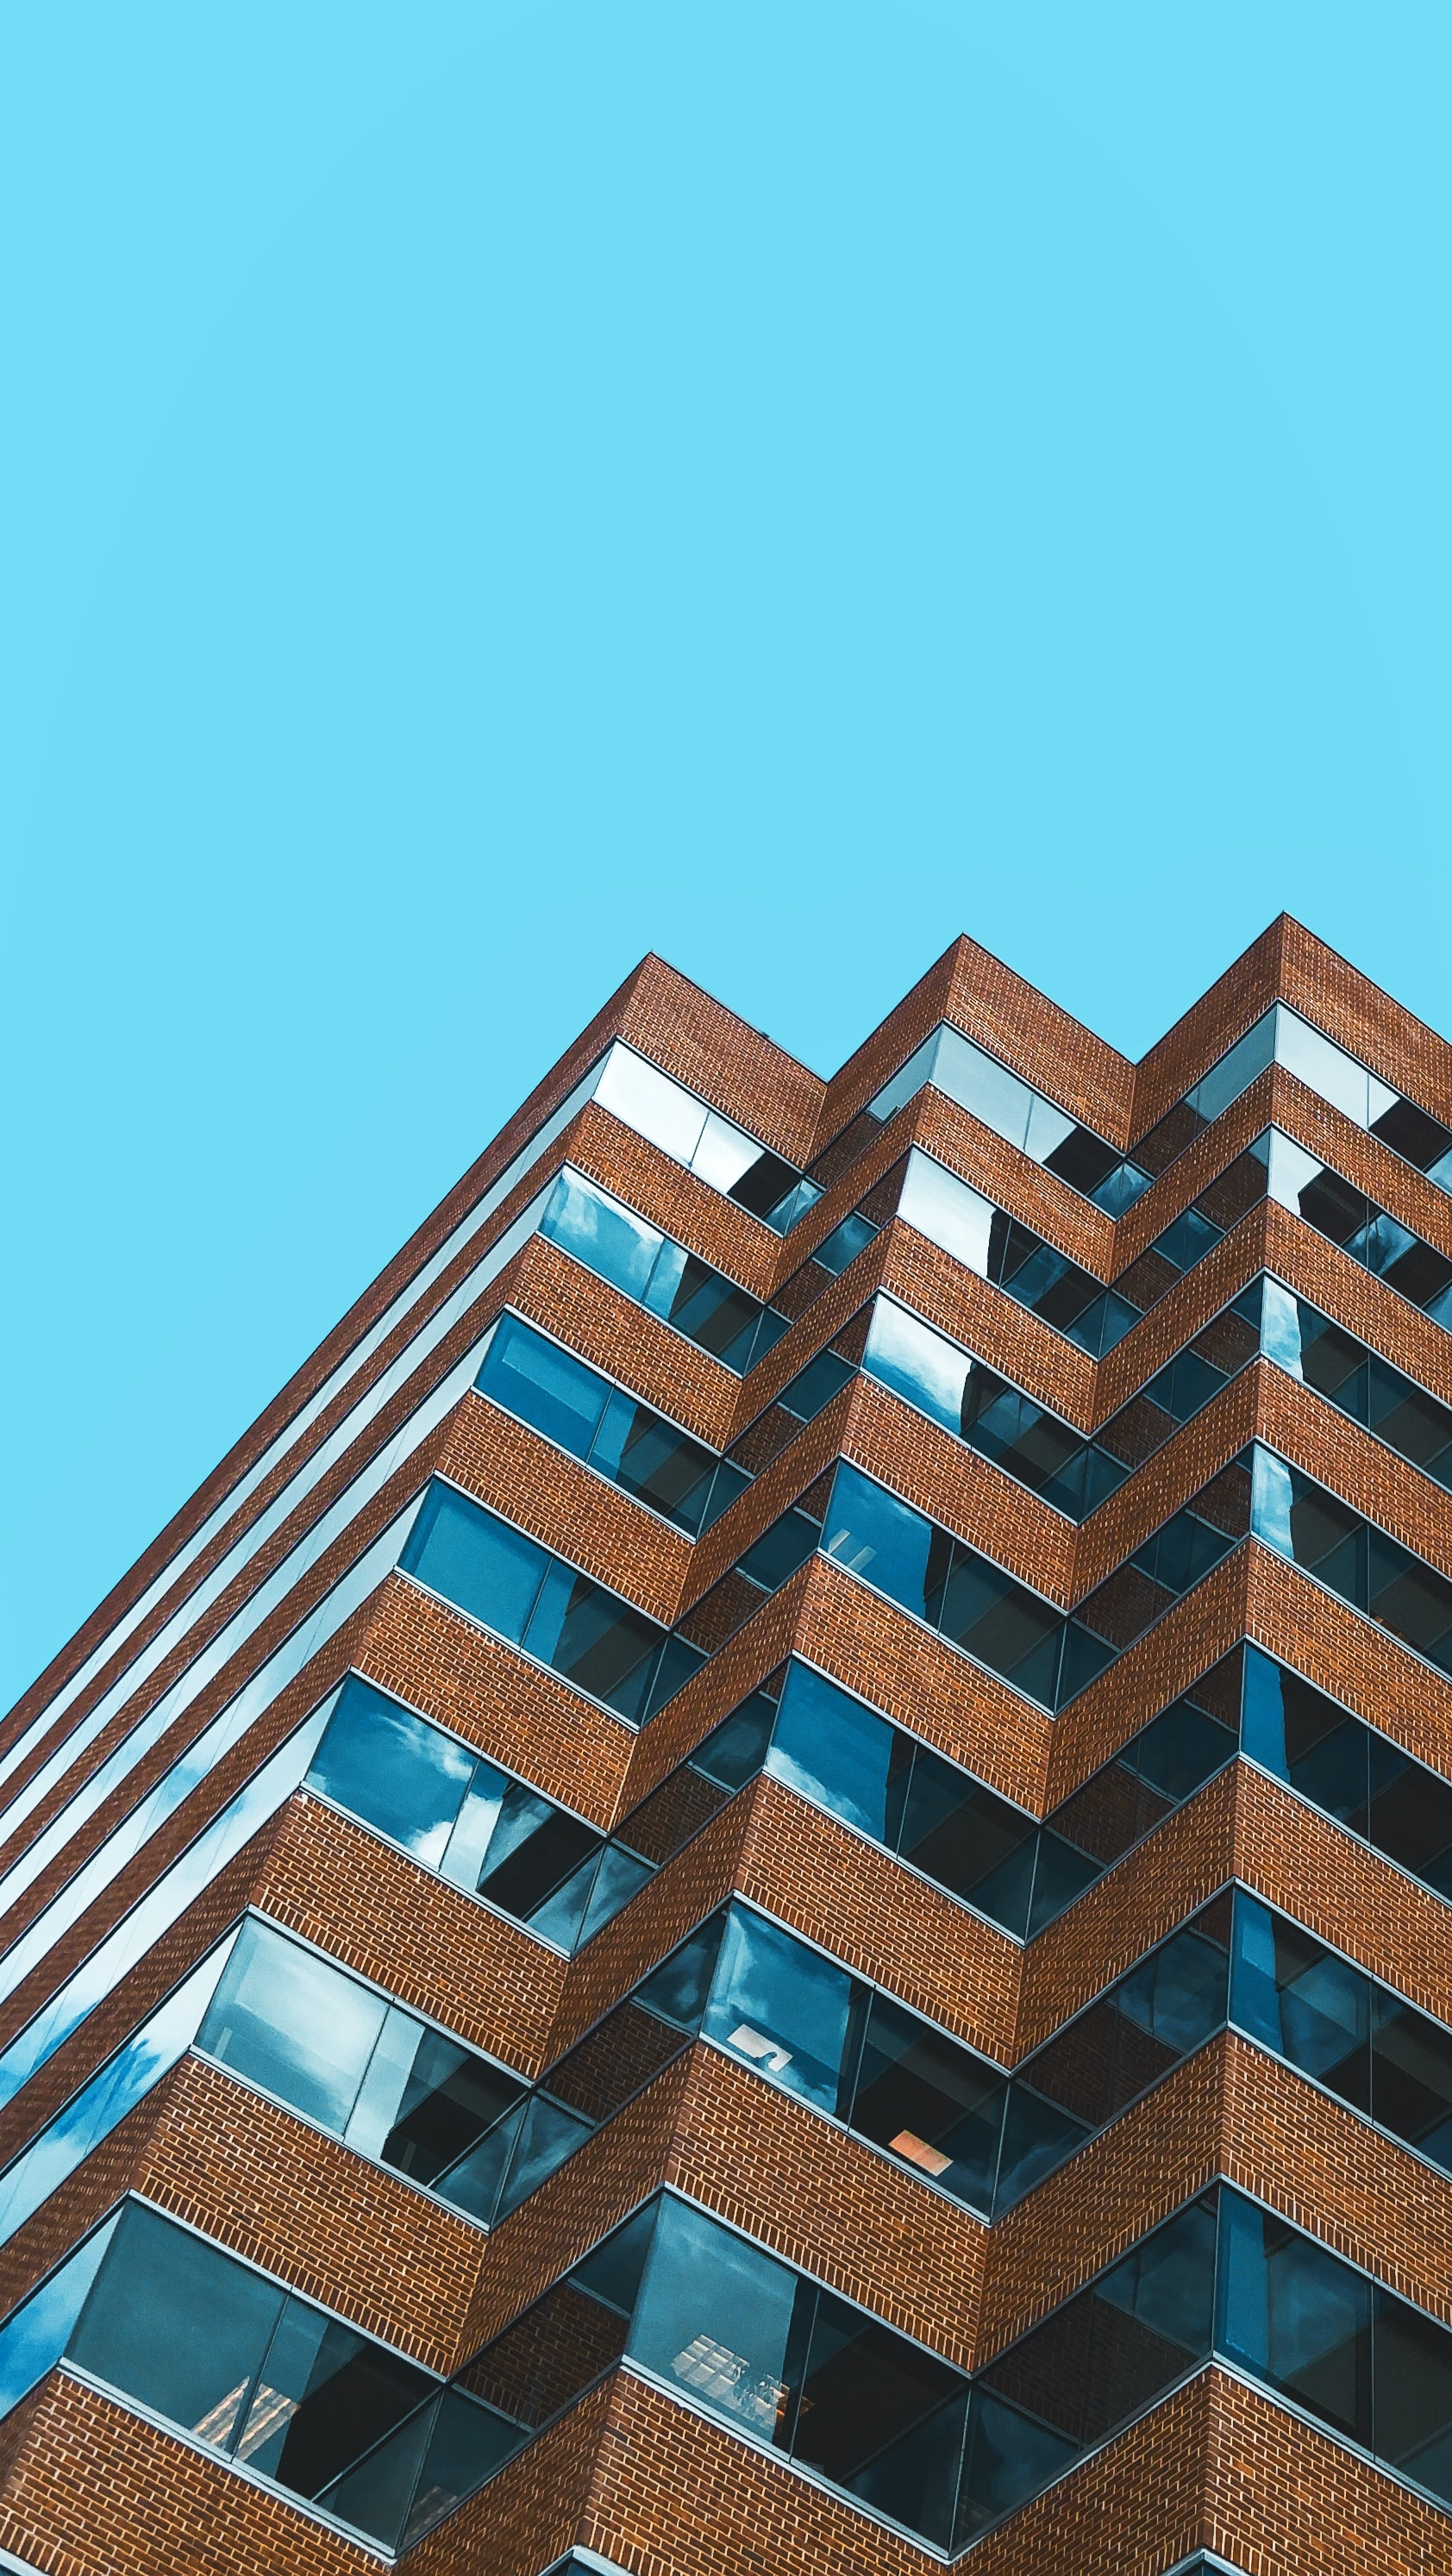 low angle photography of brown and grey high-rise building